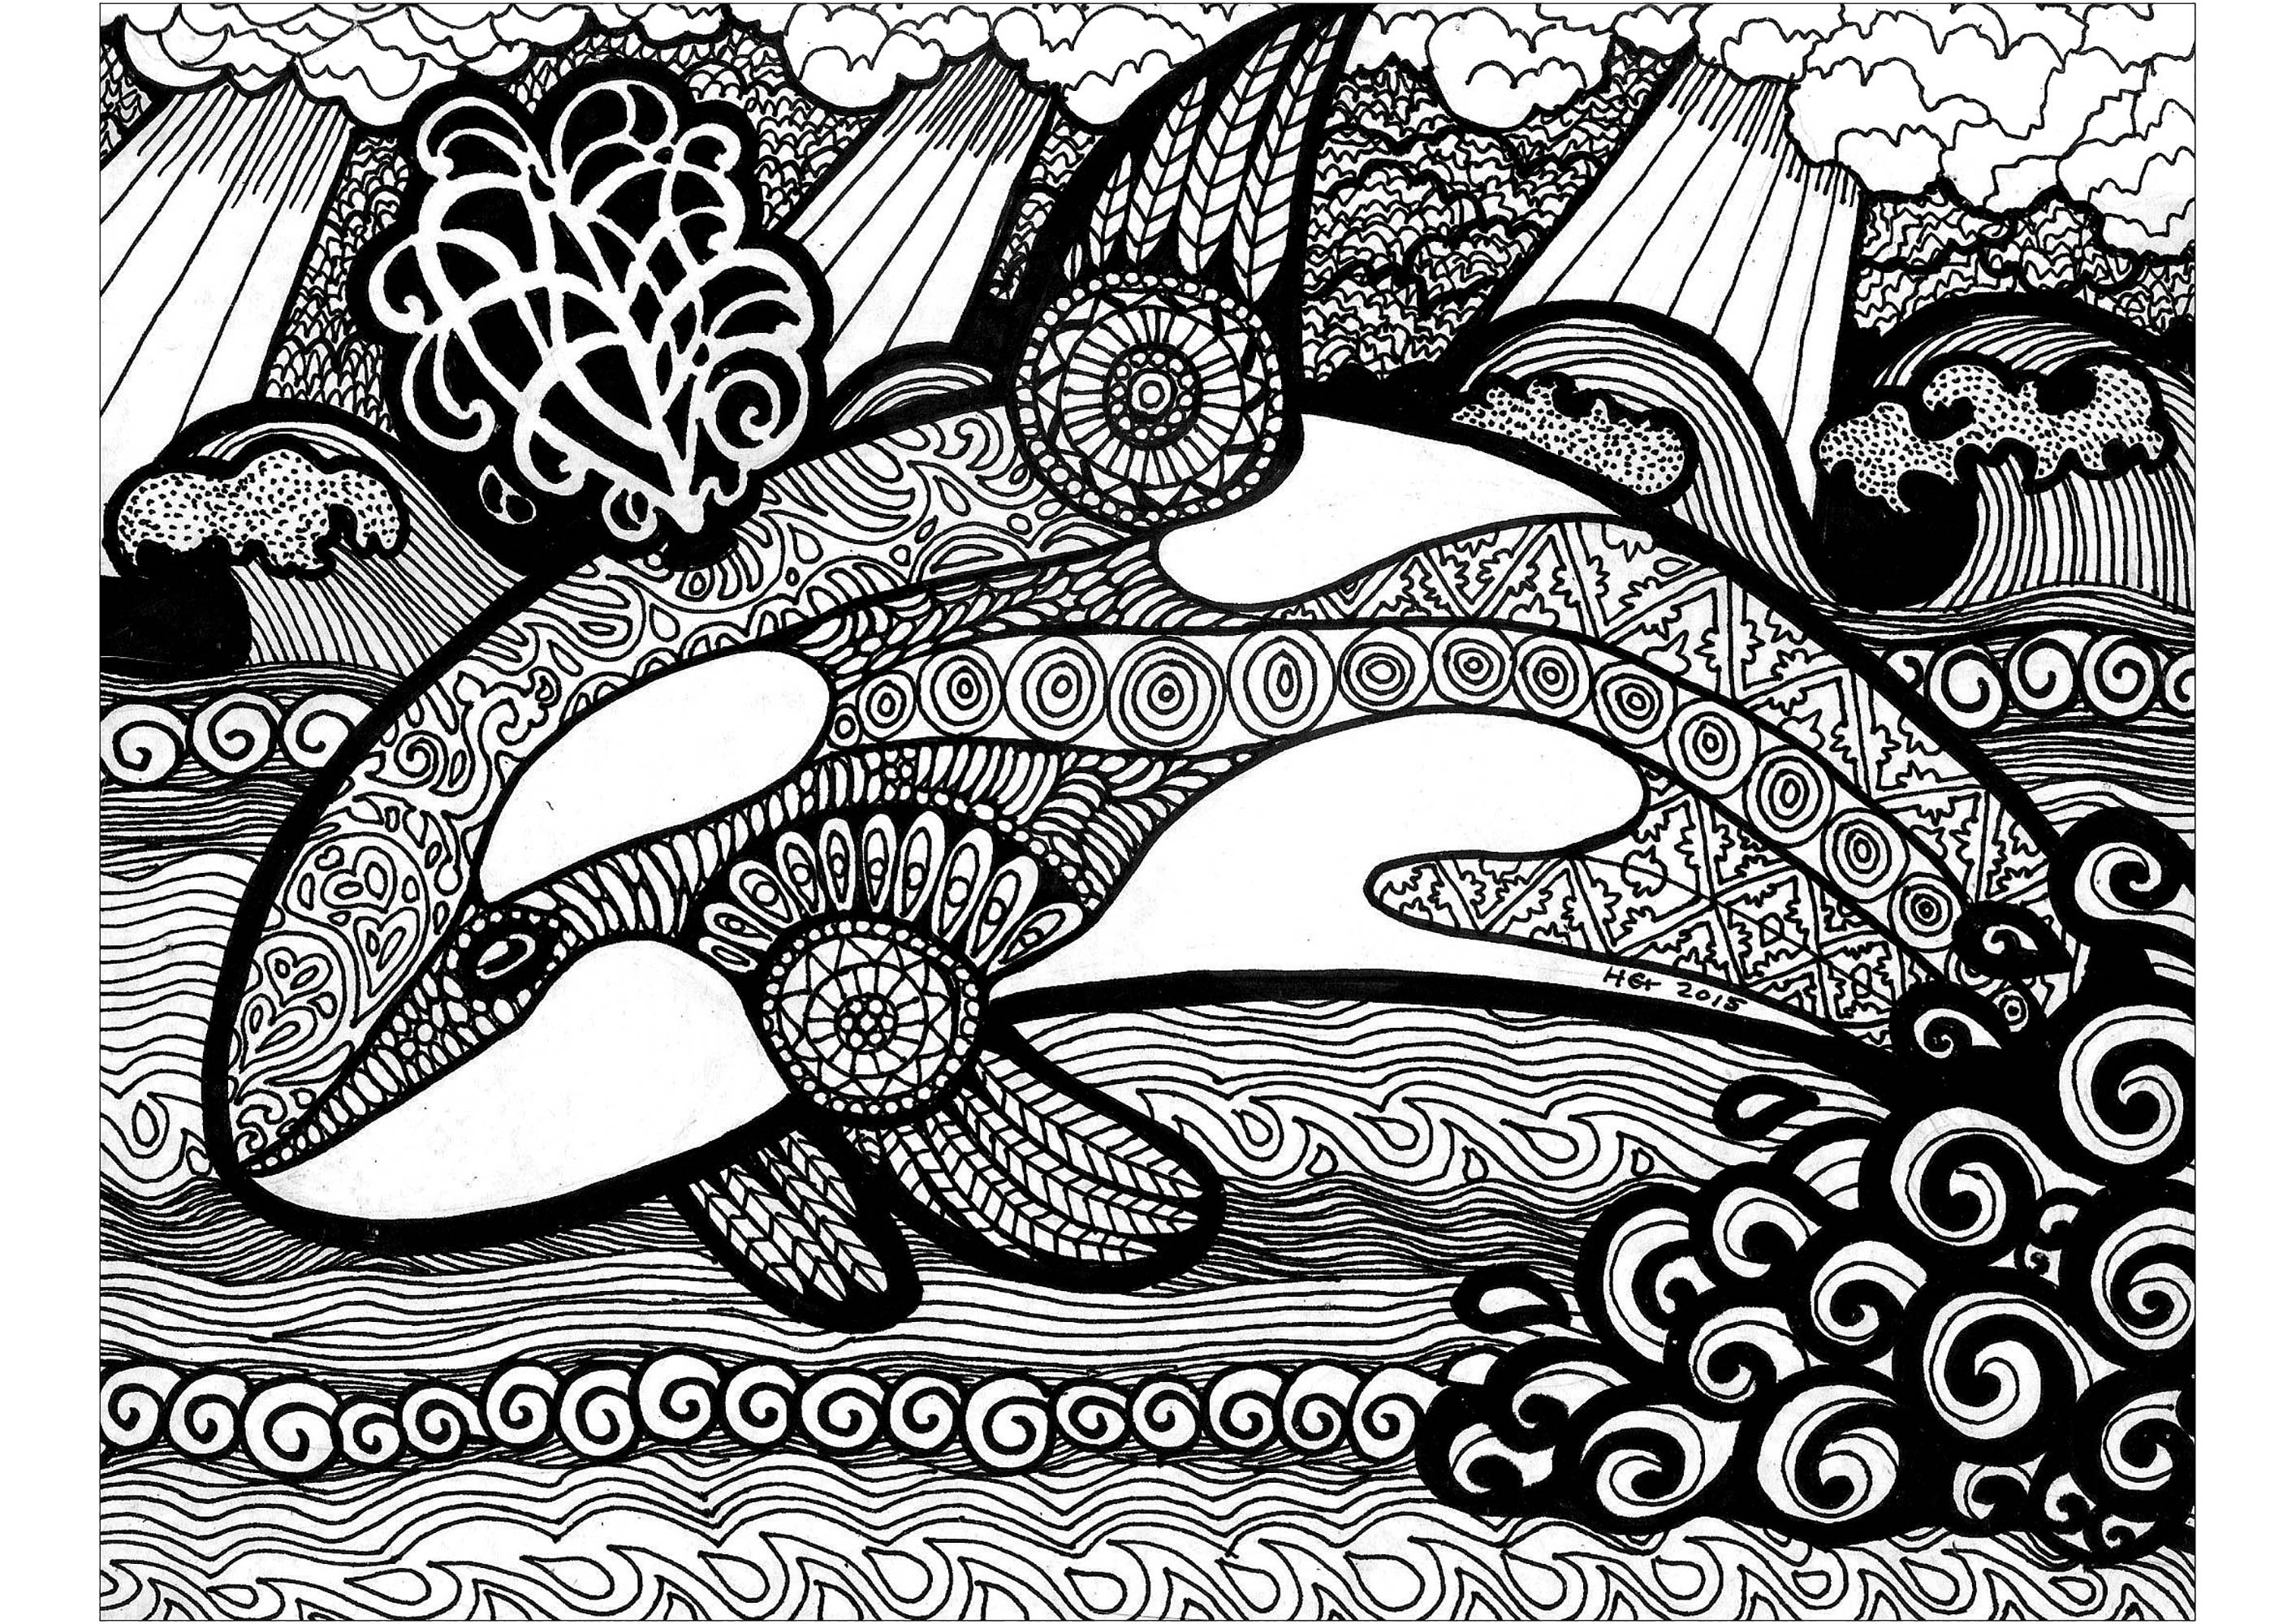 Free Pictures Of Whales To Color, Download Free Clip Art, Free ... | 2000x2828